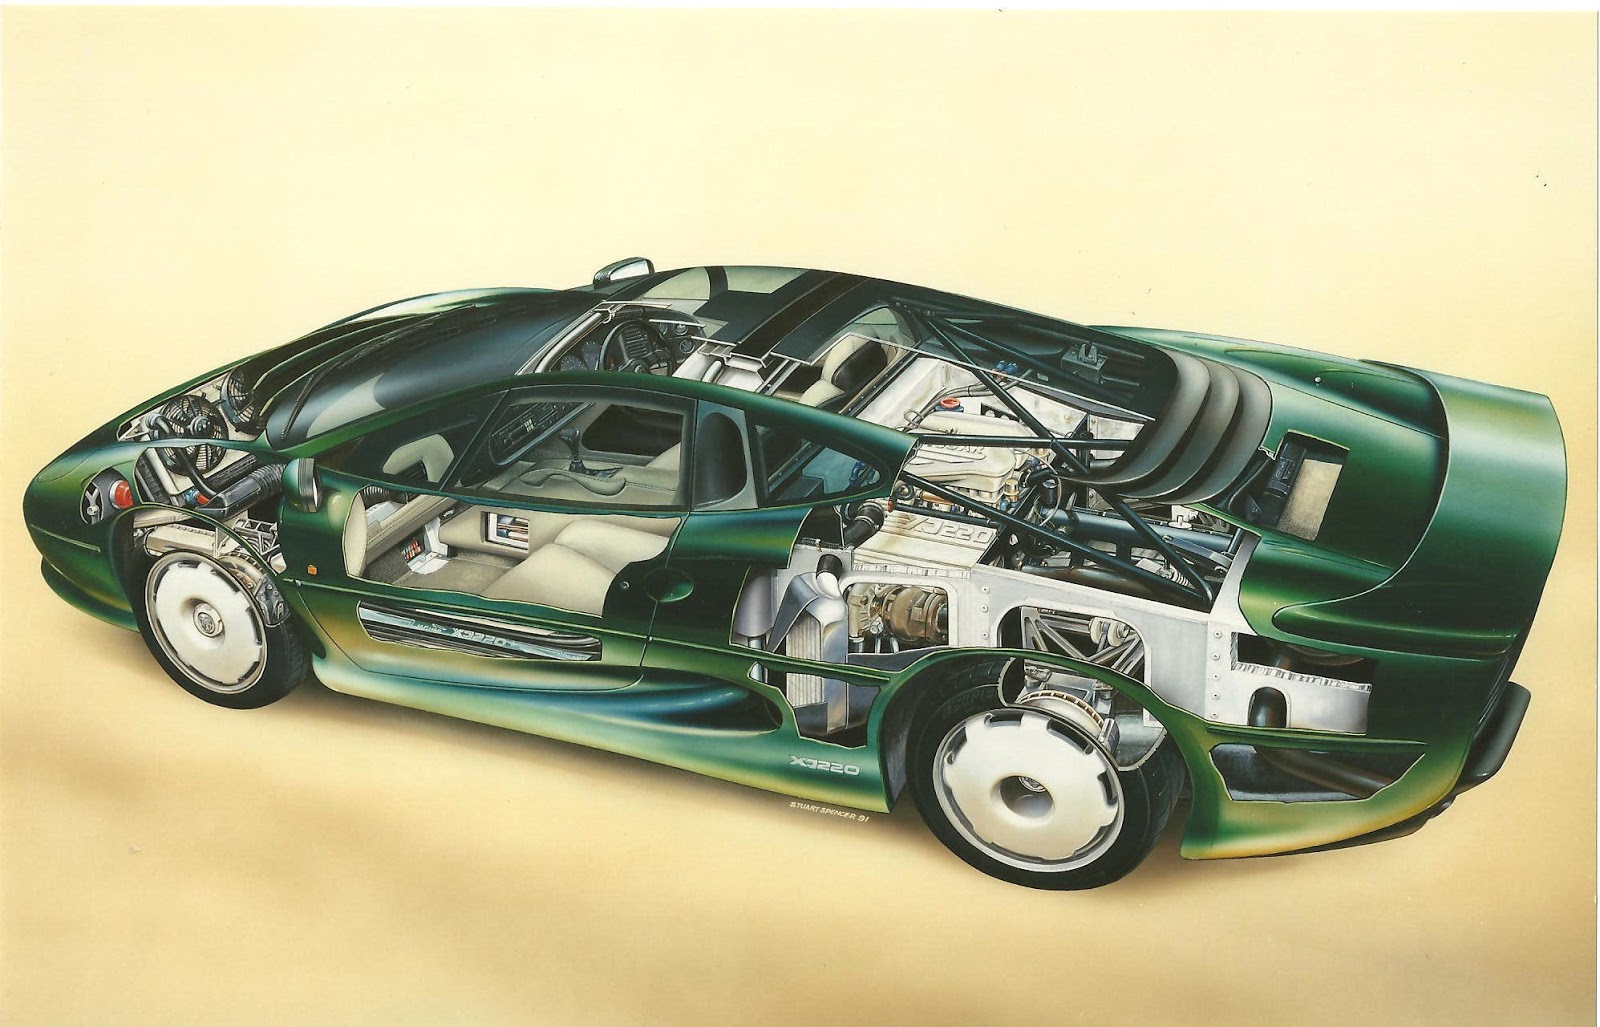 XJ220+production+car+cutaway.jpg